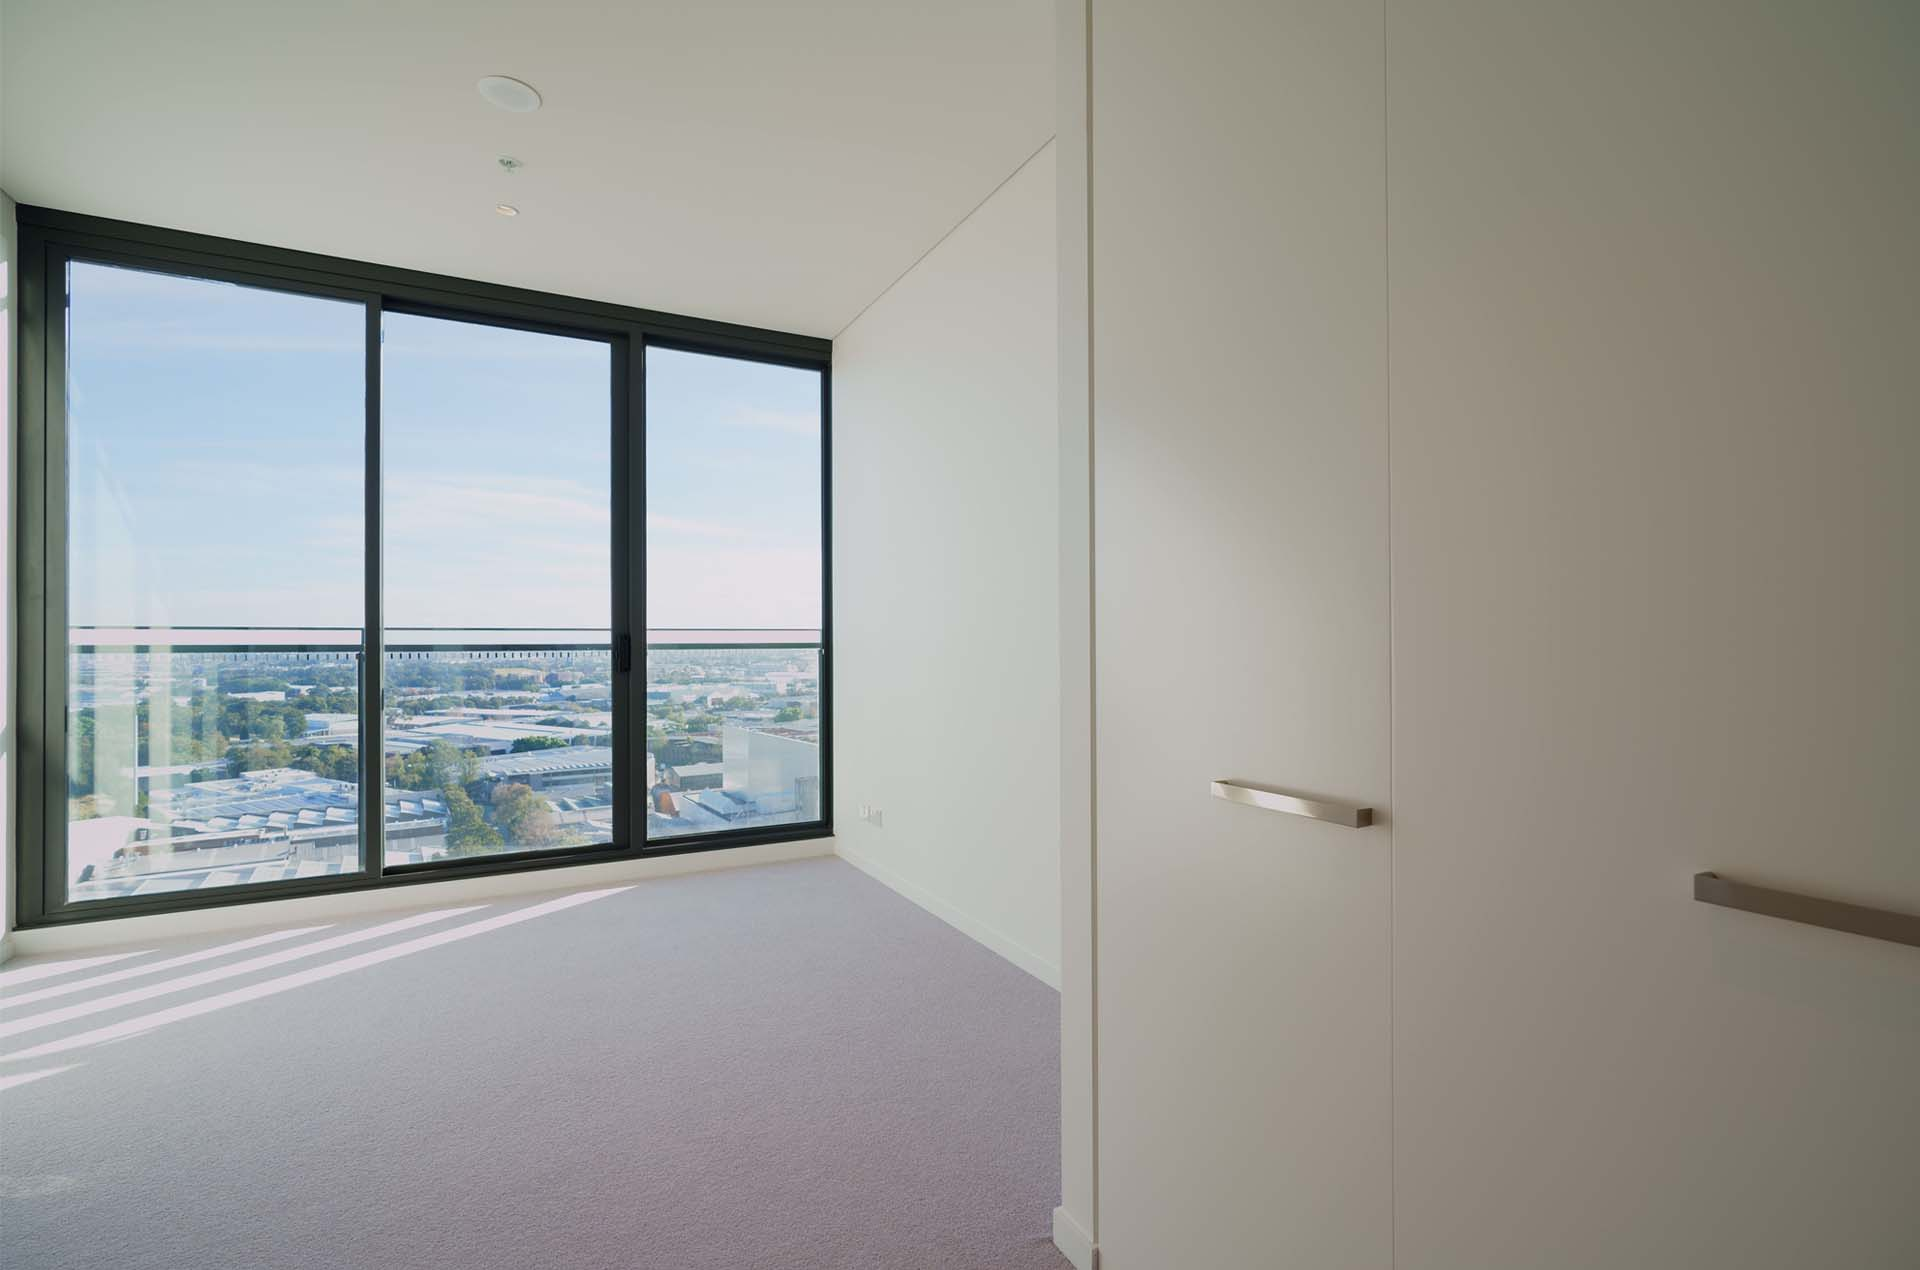 3 bedroom apartment for lease in infinity